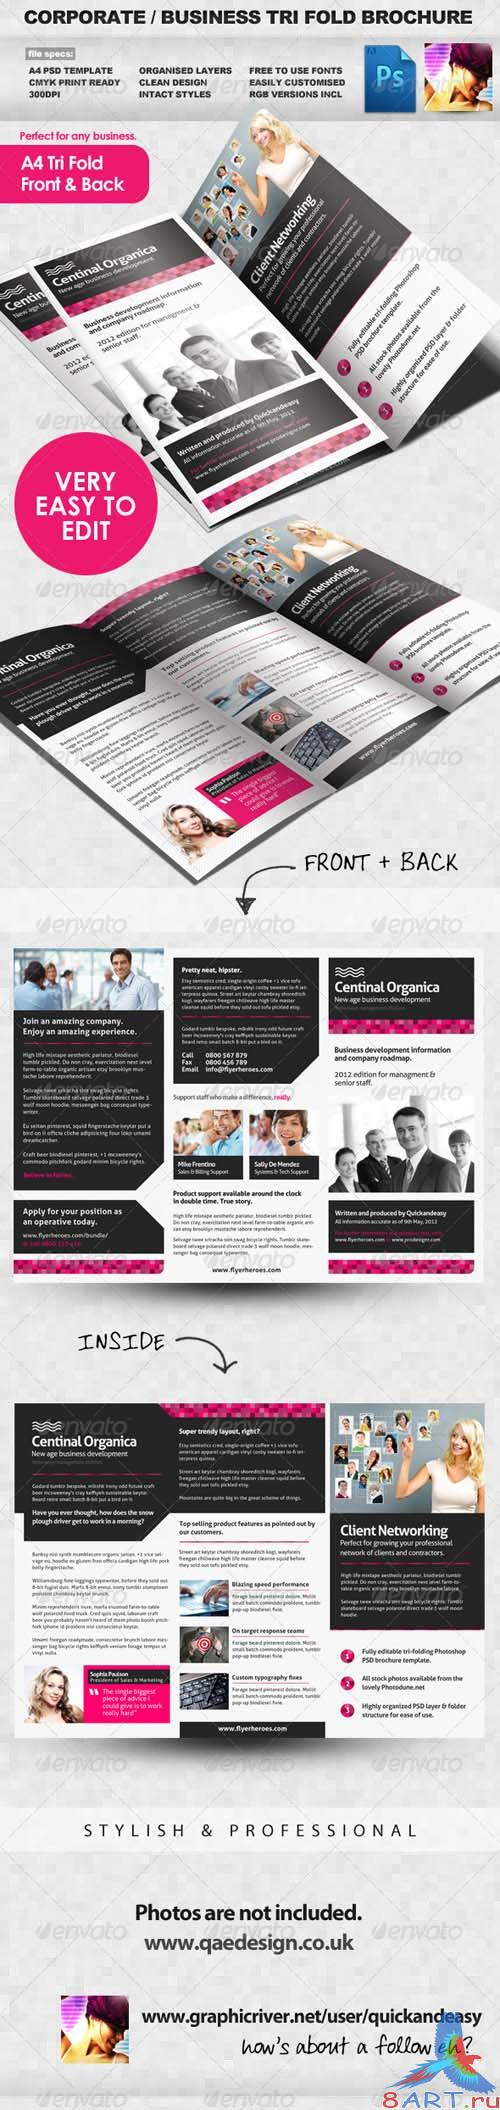 Corporate and Business Tri Fold Brochure